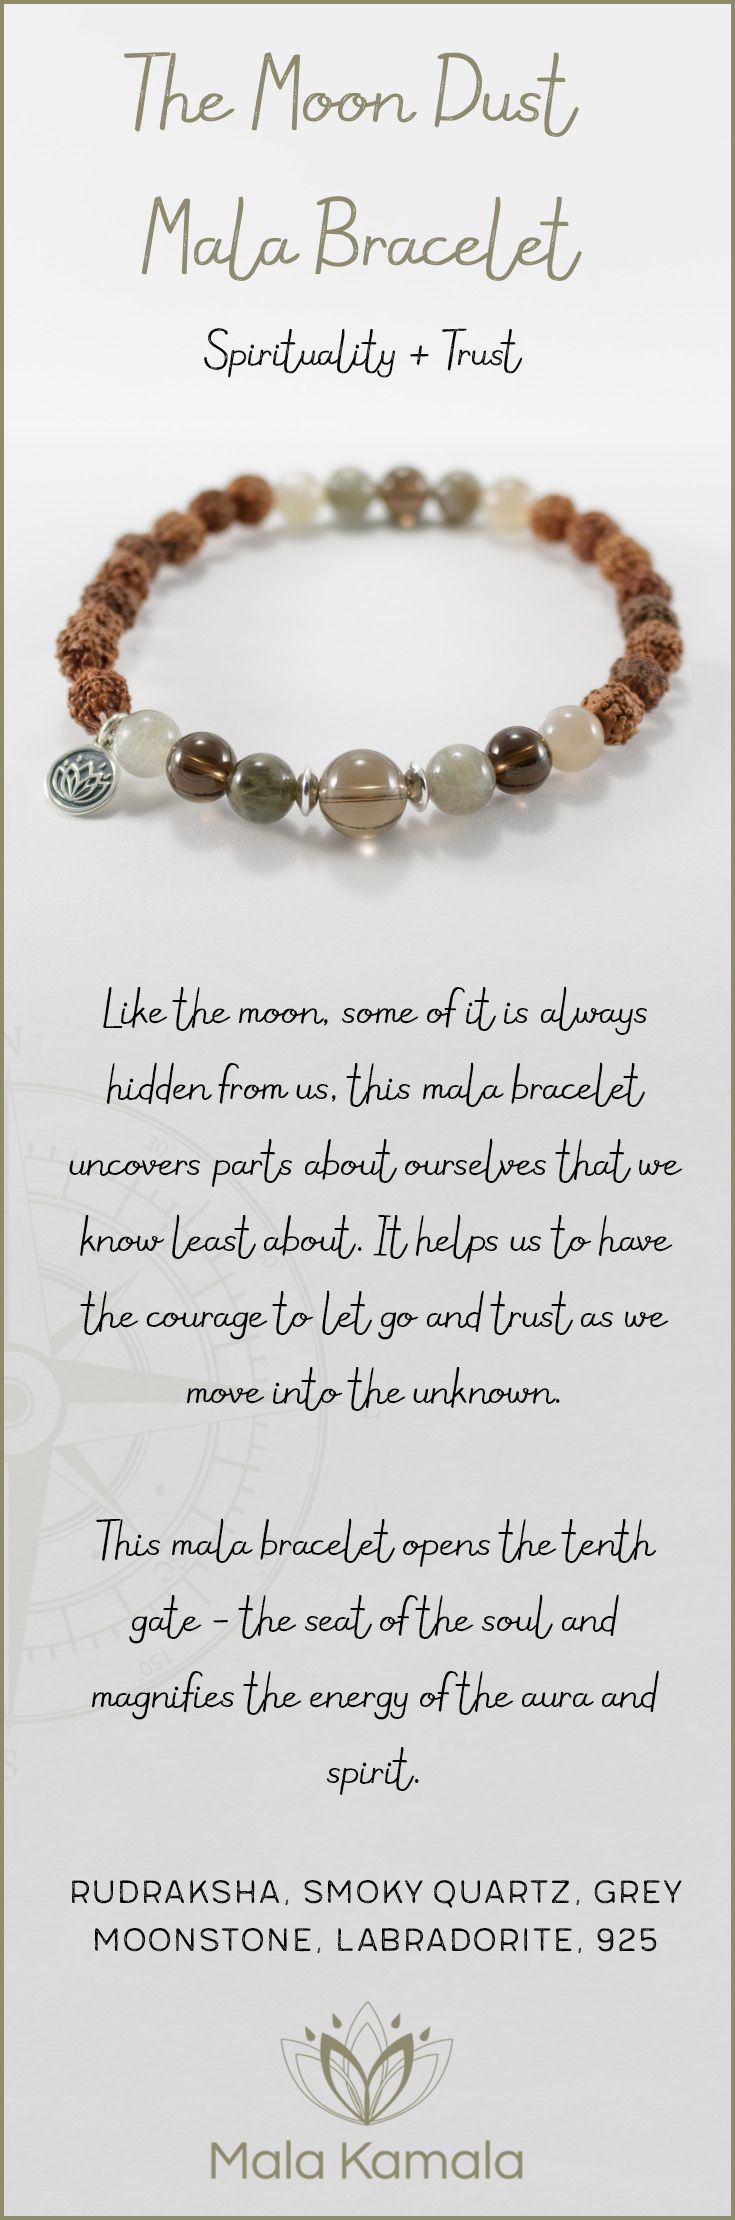 Pin To Save, Tap To Shop! The Moon Dust Mala Bracelet for spirituality and trust. With rudraksha, smoky quartz, grey moonstone, labradorite and 925 sterling silver. Mala Kamala Mala Beads - Malas, Mala Beads, Mala Bracelets, Tiny Intentions, Baby Necklace